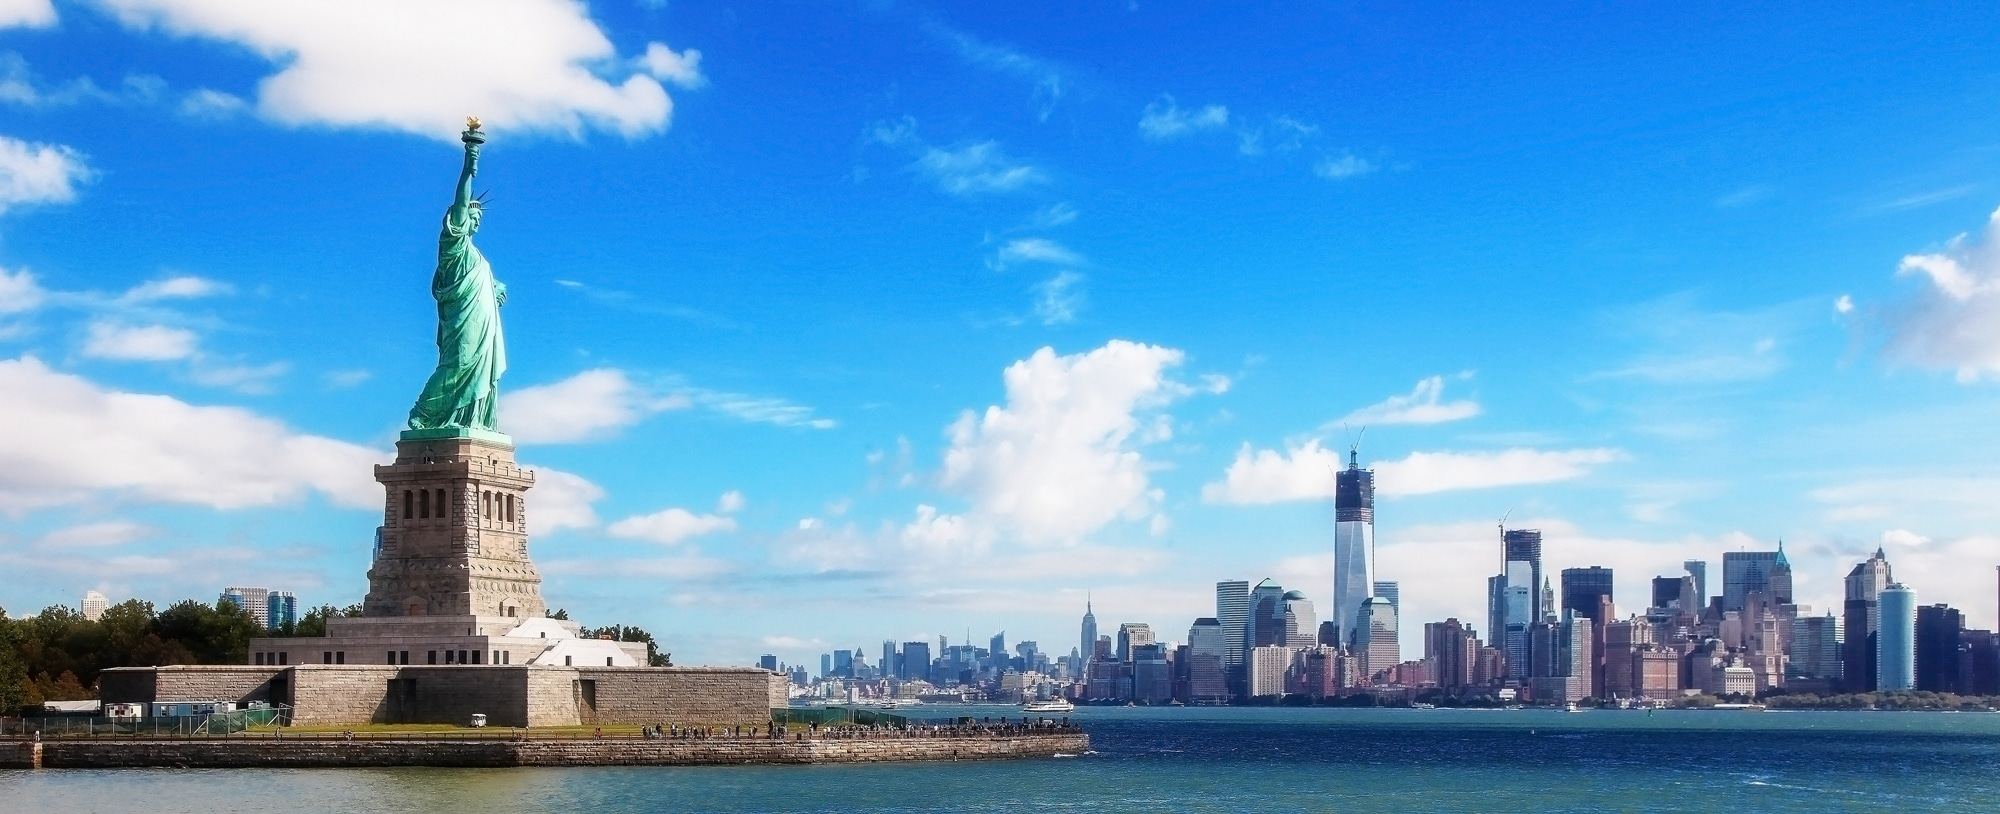 Statue of Liberty and NYC skyline on sunny day